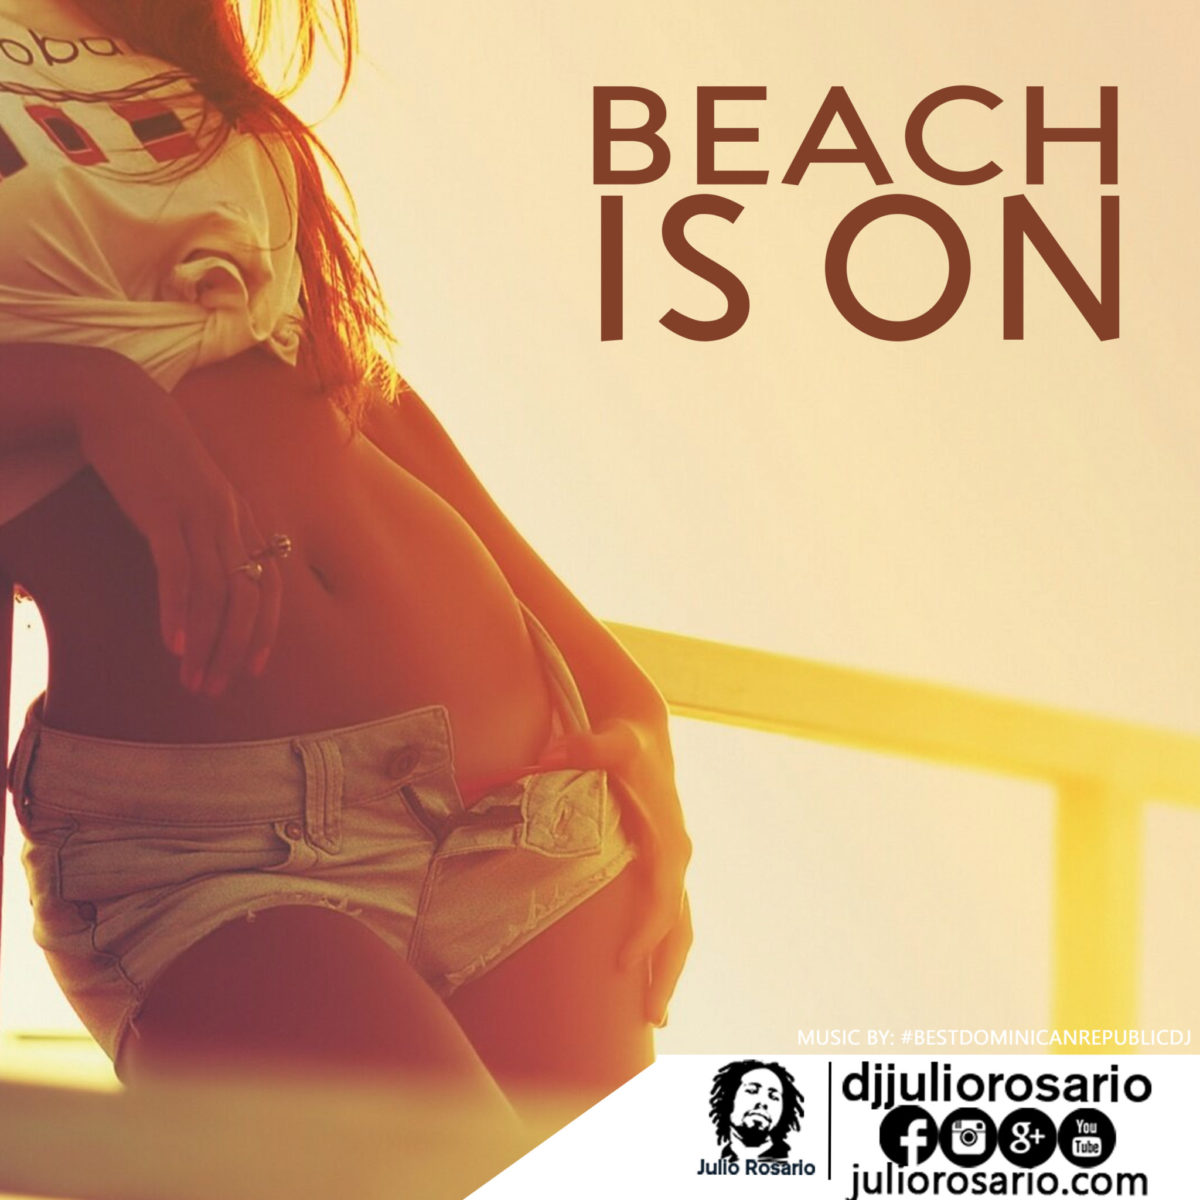 Beach is on, deep, deephouse mix Best Dominican Republic dj